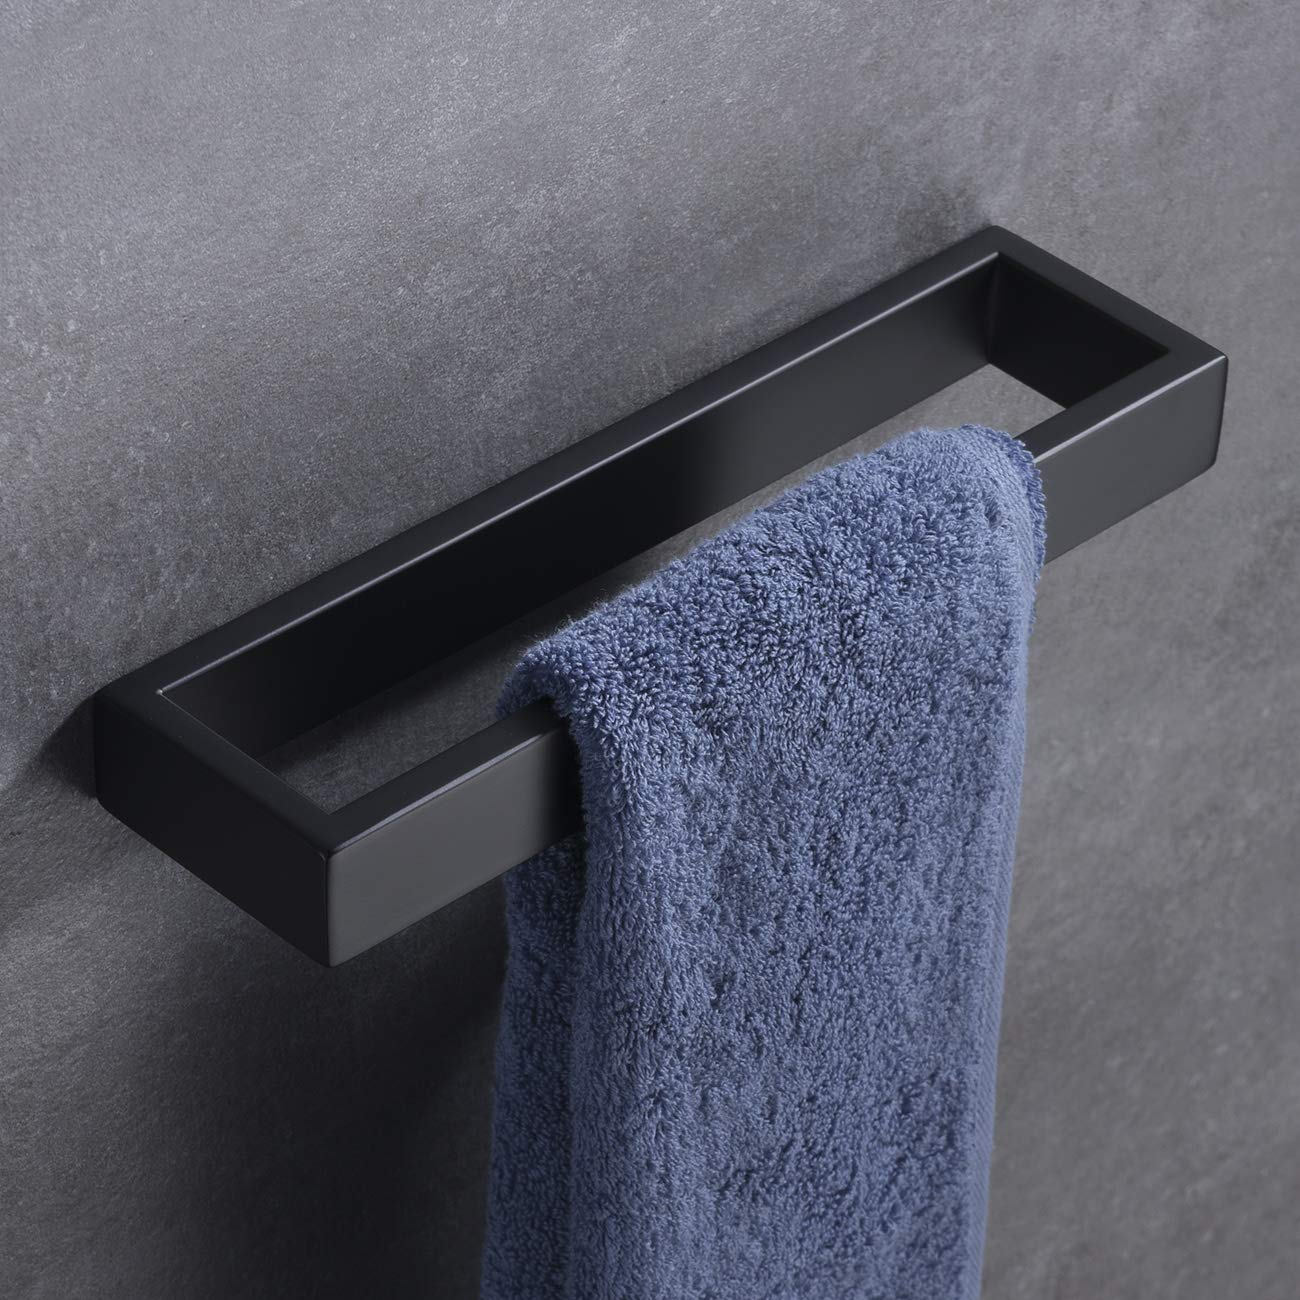 Hoooh Bath Towel Holder - Hand Towel Ring Matte Black SUS 304 Stainless Steel Contemporary Style Wall Mount, D110-BK by Hoooh